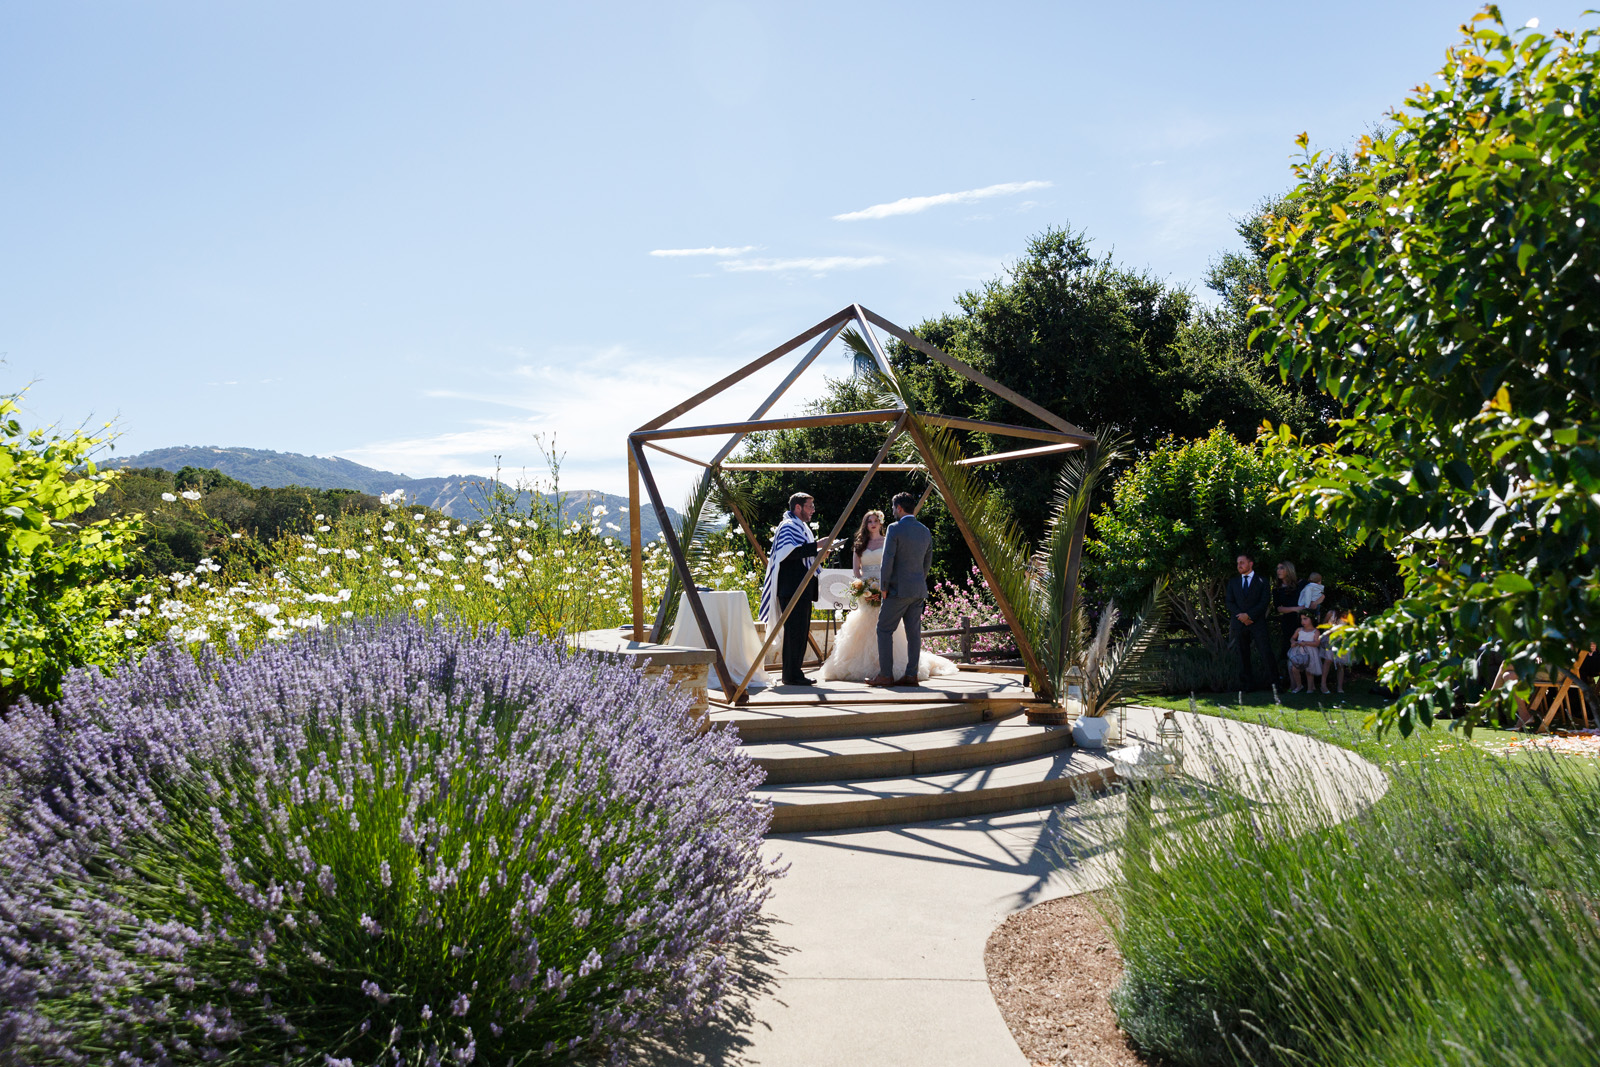 Outdoor wedding ceremony geometric ceremony structure gardens